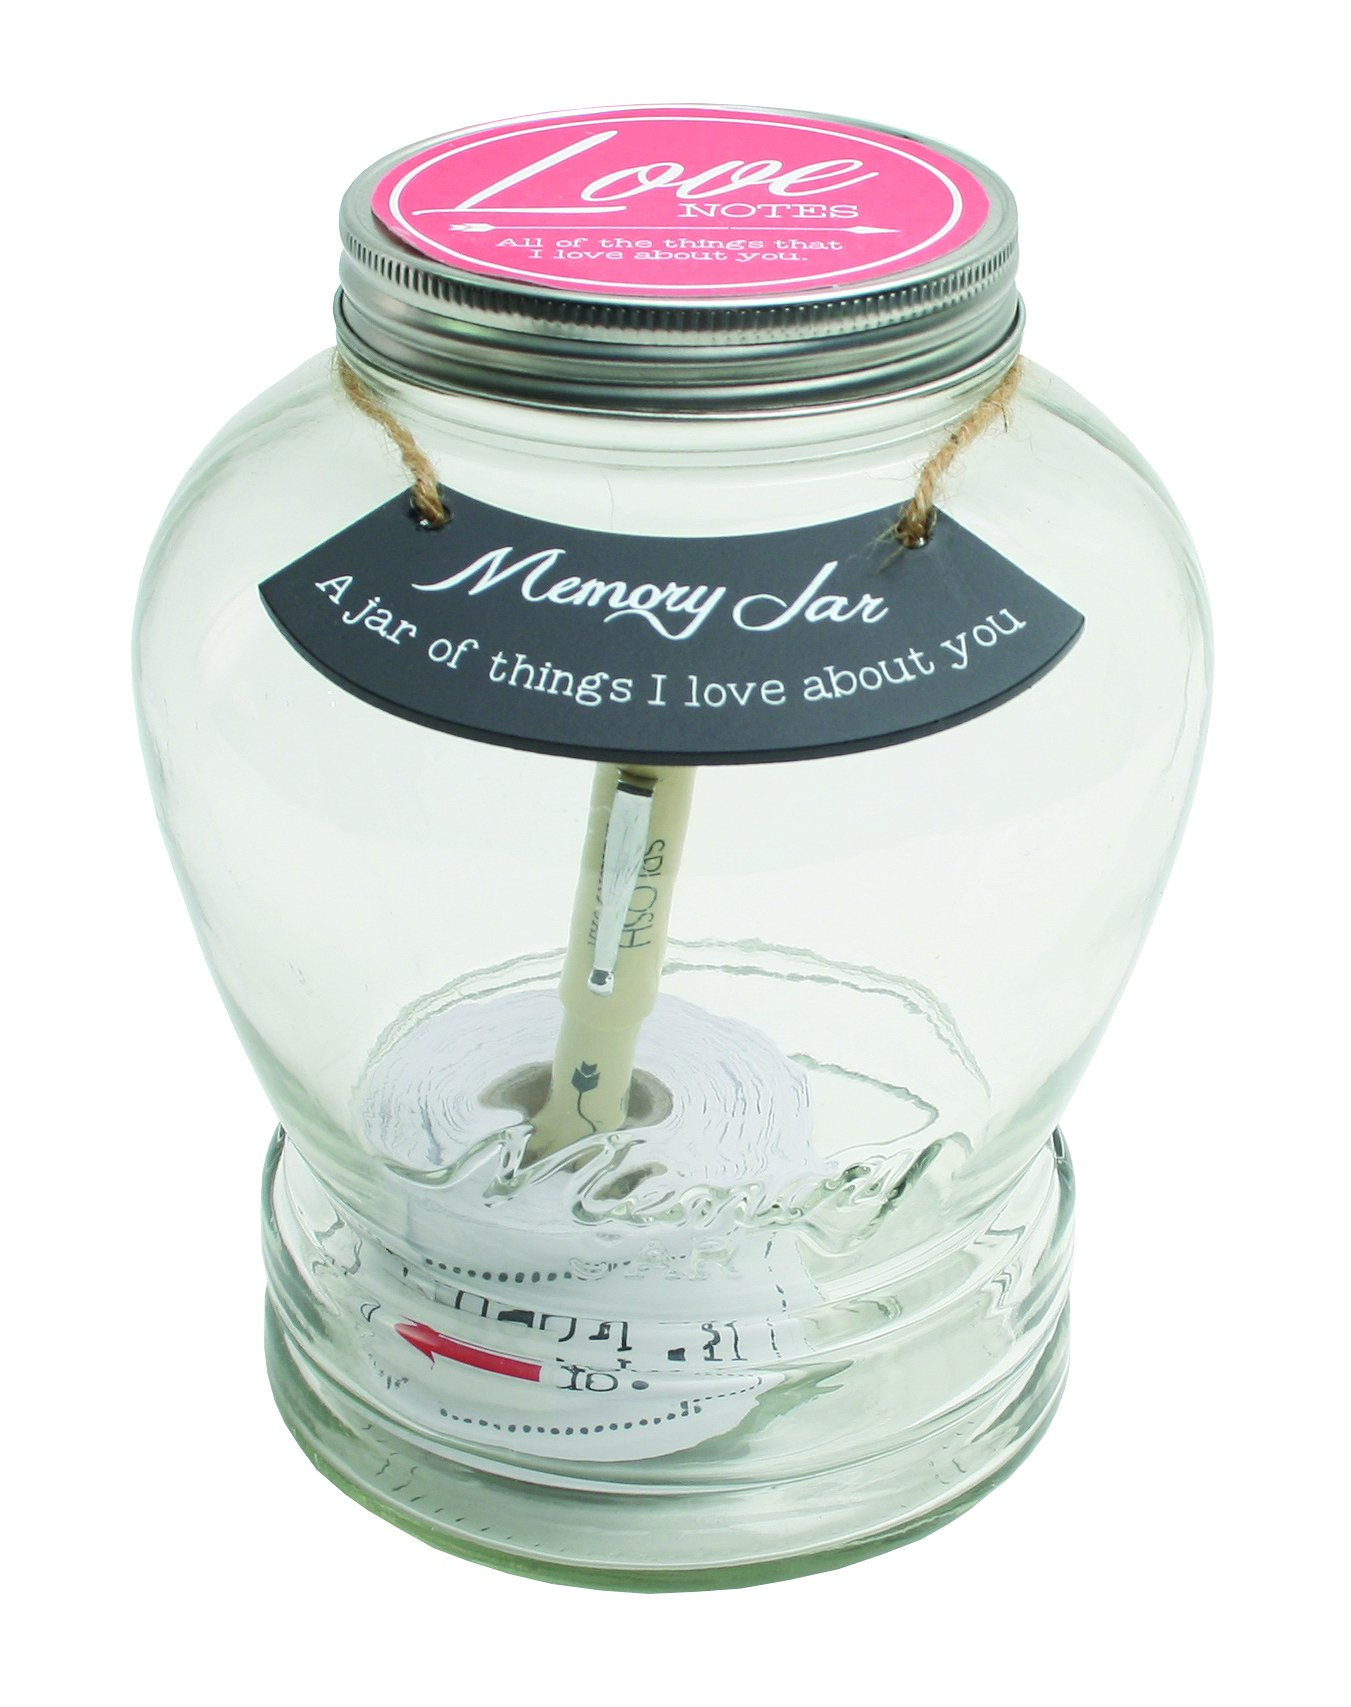 Top Shelf TS-MJ001 Love Notes Memory Jar ; Unique and Thoughtful Gift Ideas for Husband and Wife ; Romantic Gifts ; Memorable Keepsakes ; Kit Comes with 180 Tickets and Decorative Lid